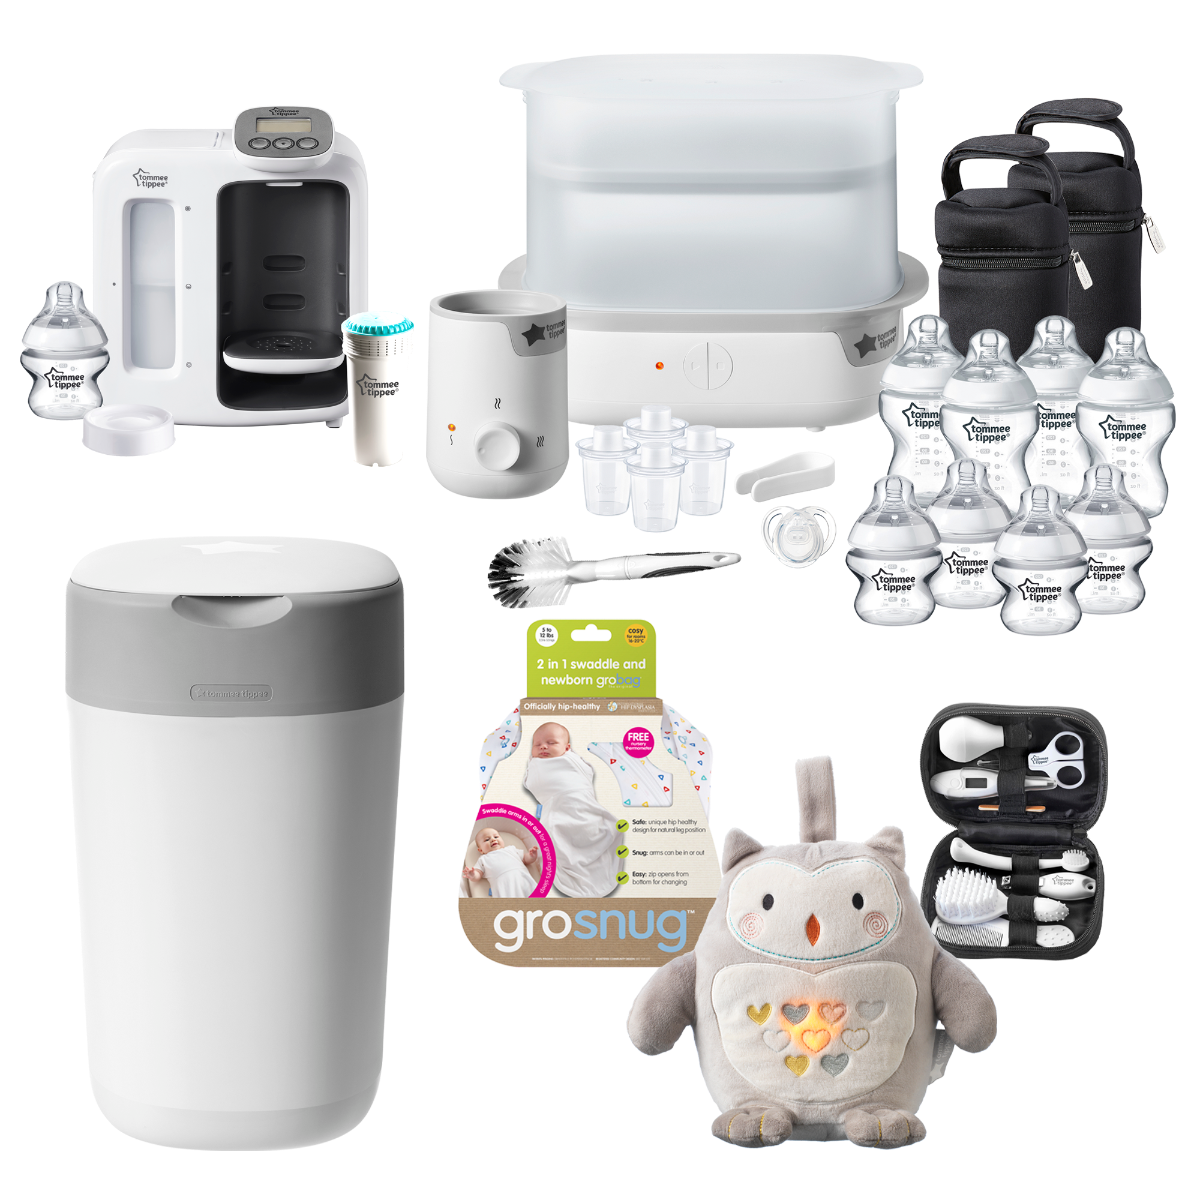 white-perfect-prep-complete-feeding-kit-twist-and-click-confetti-grosnug-grofriend-and-healthcare-kit